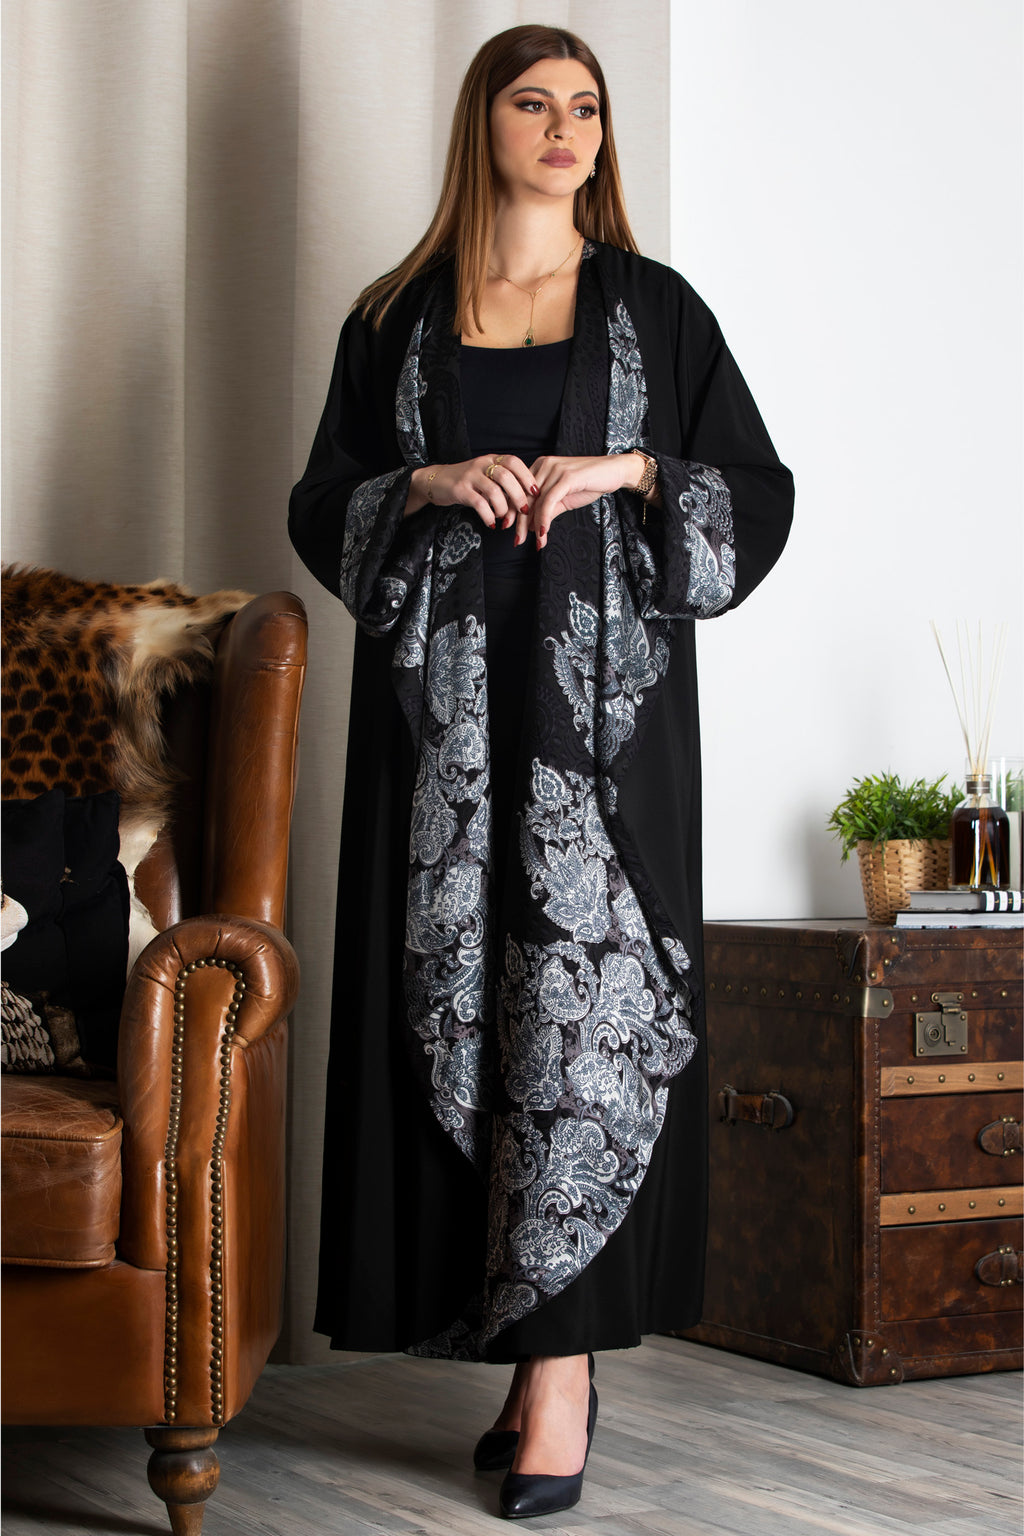 BLACK DOUBLE FACE PATTERNED OPEN ABAYA.